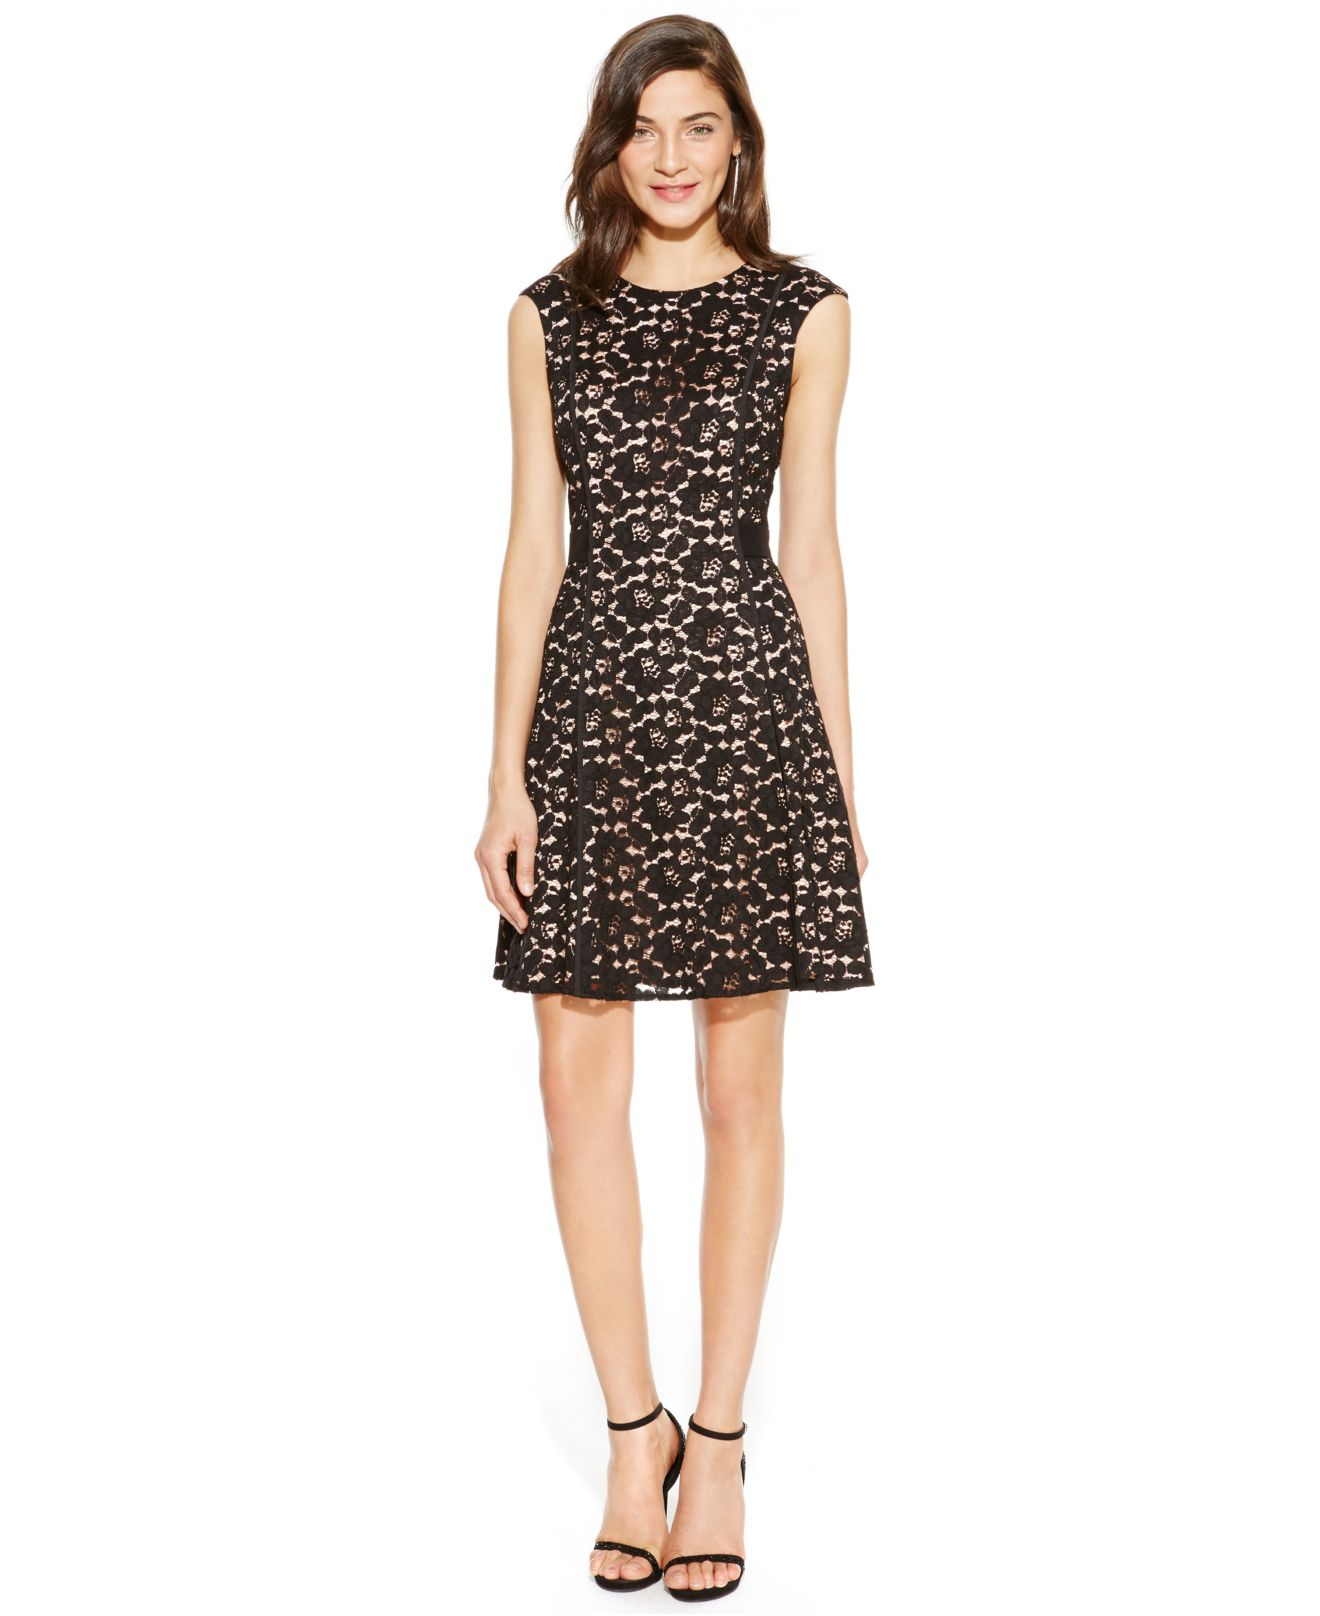 Lyst - Vince Camuto Lace A-line Dress in Black